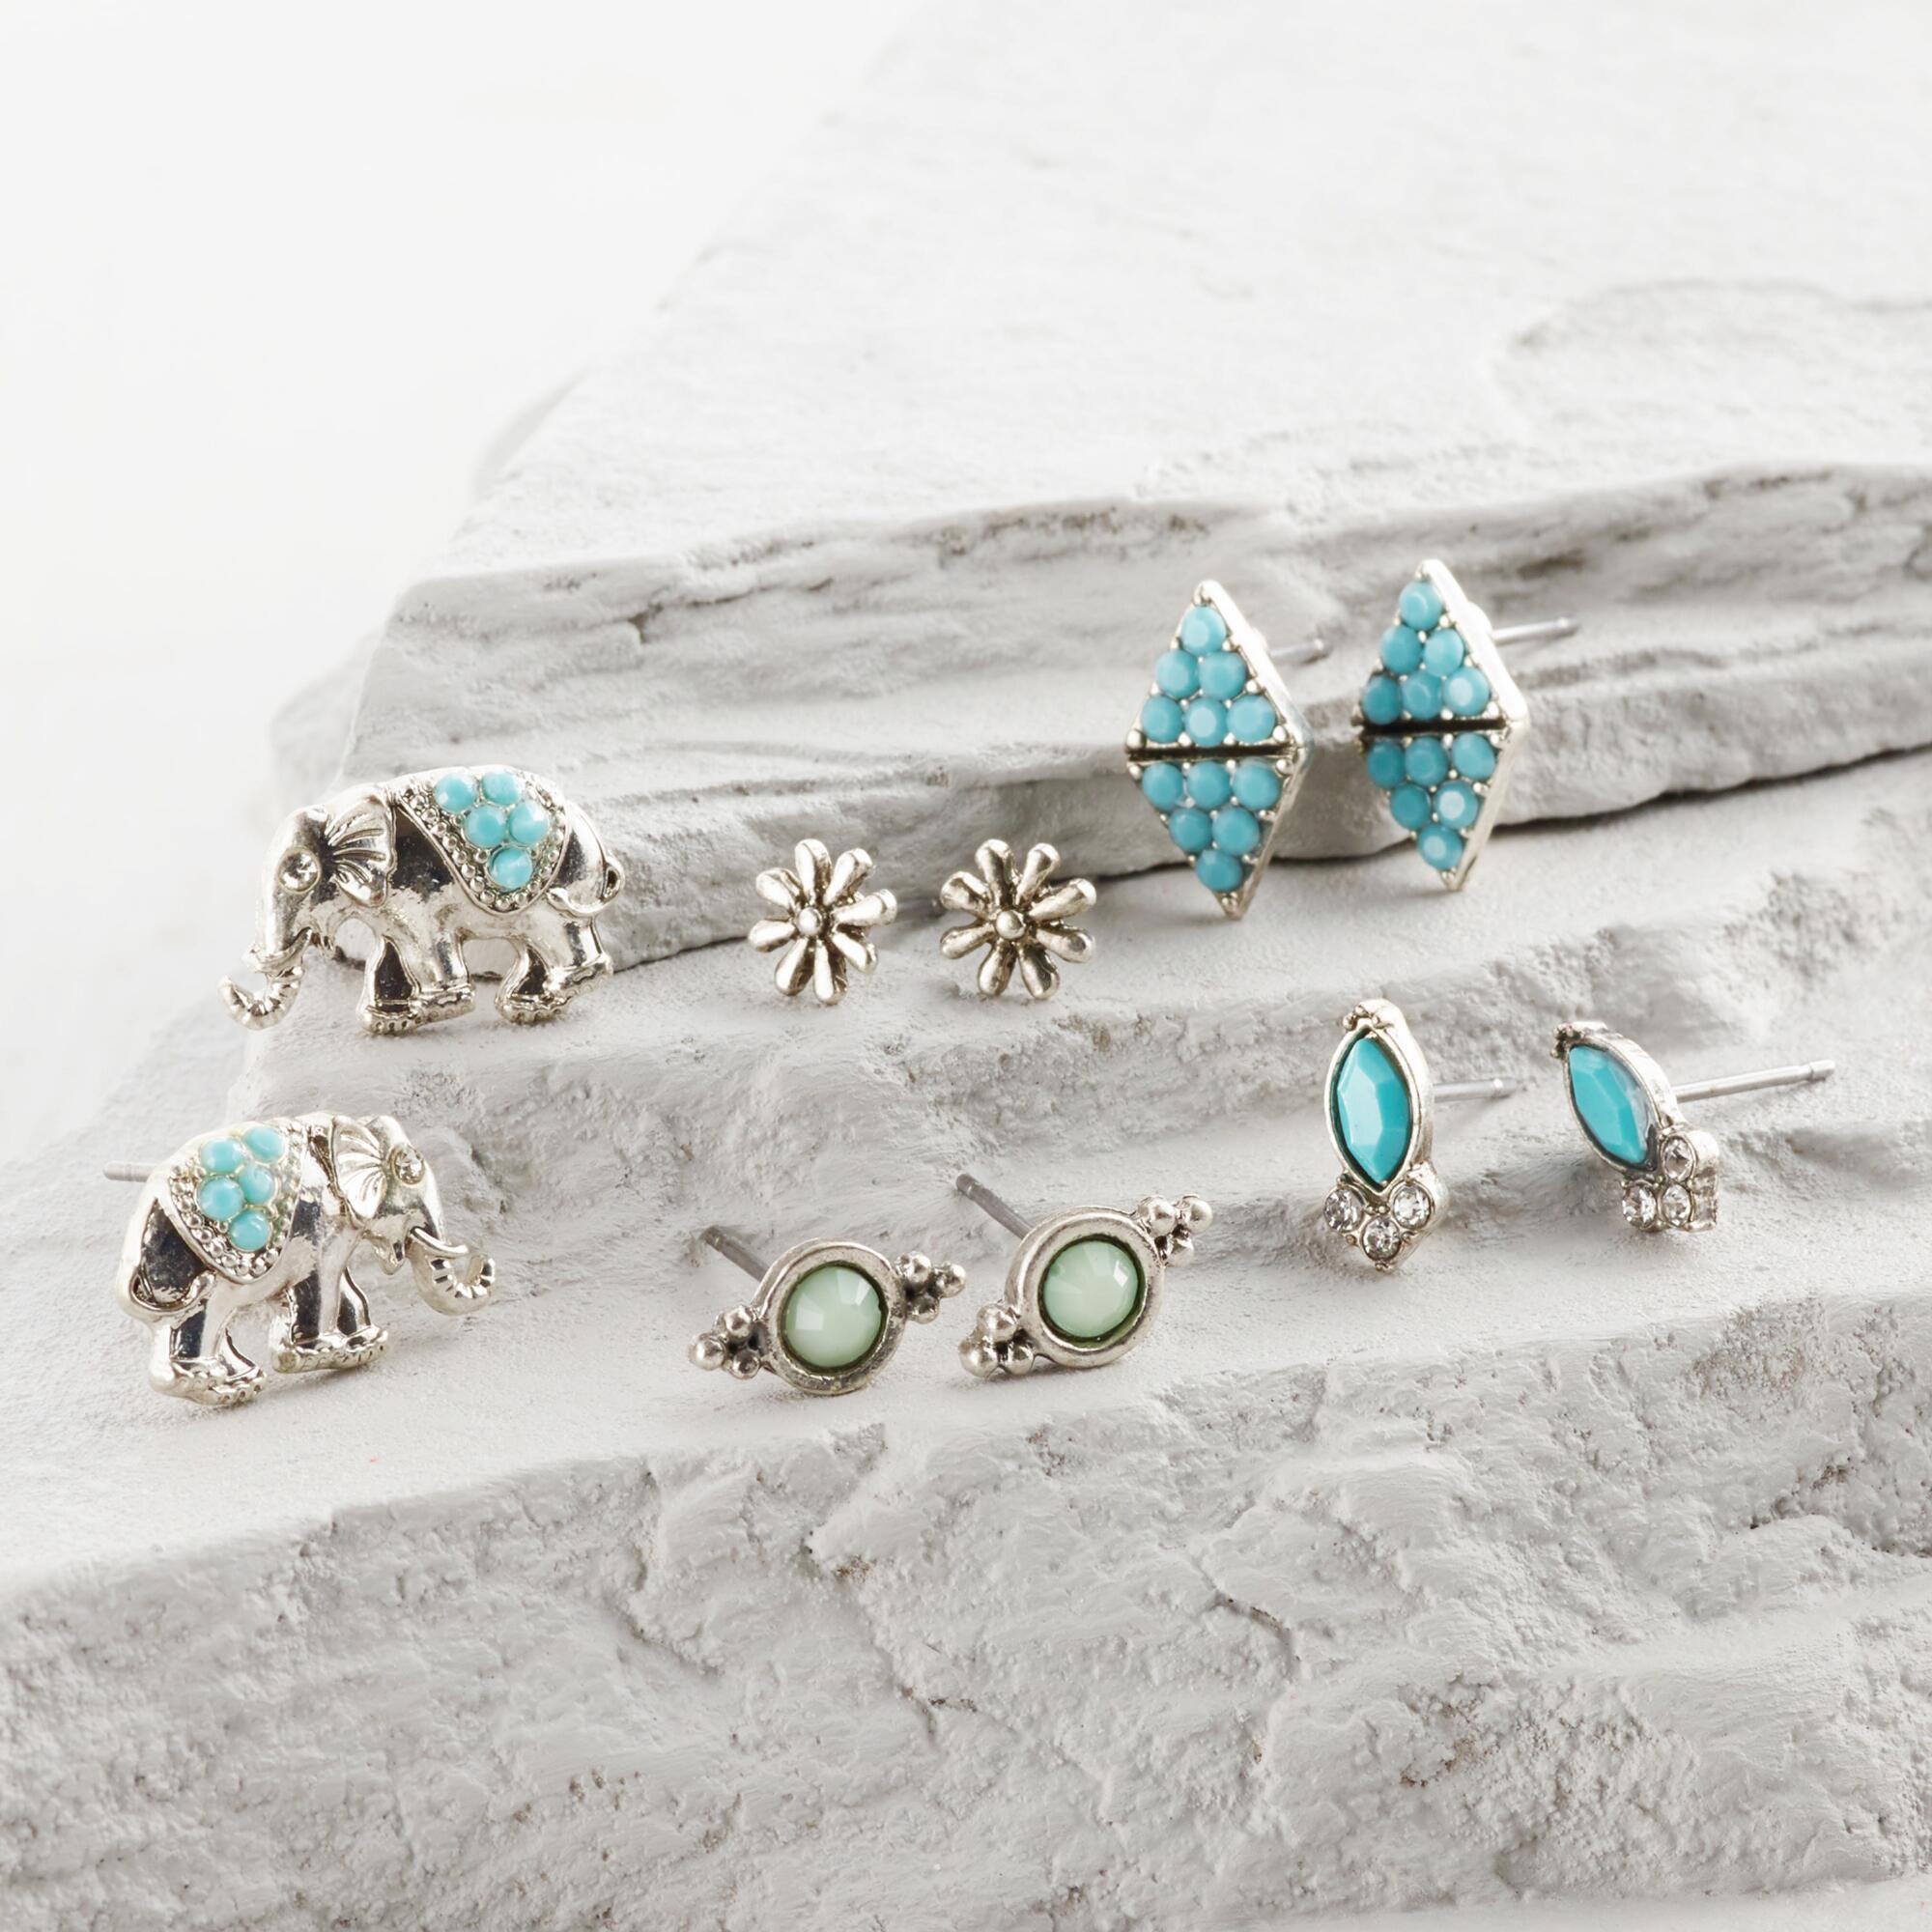 jewelers my tif earrings turquoise e gxcdtq stud lika behar clarkes shop